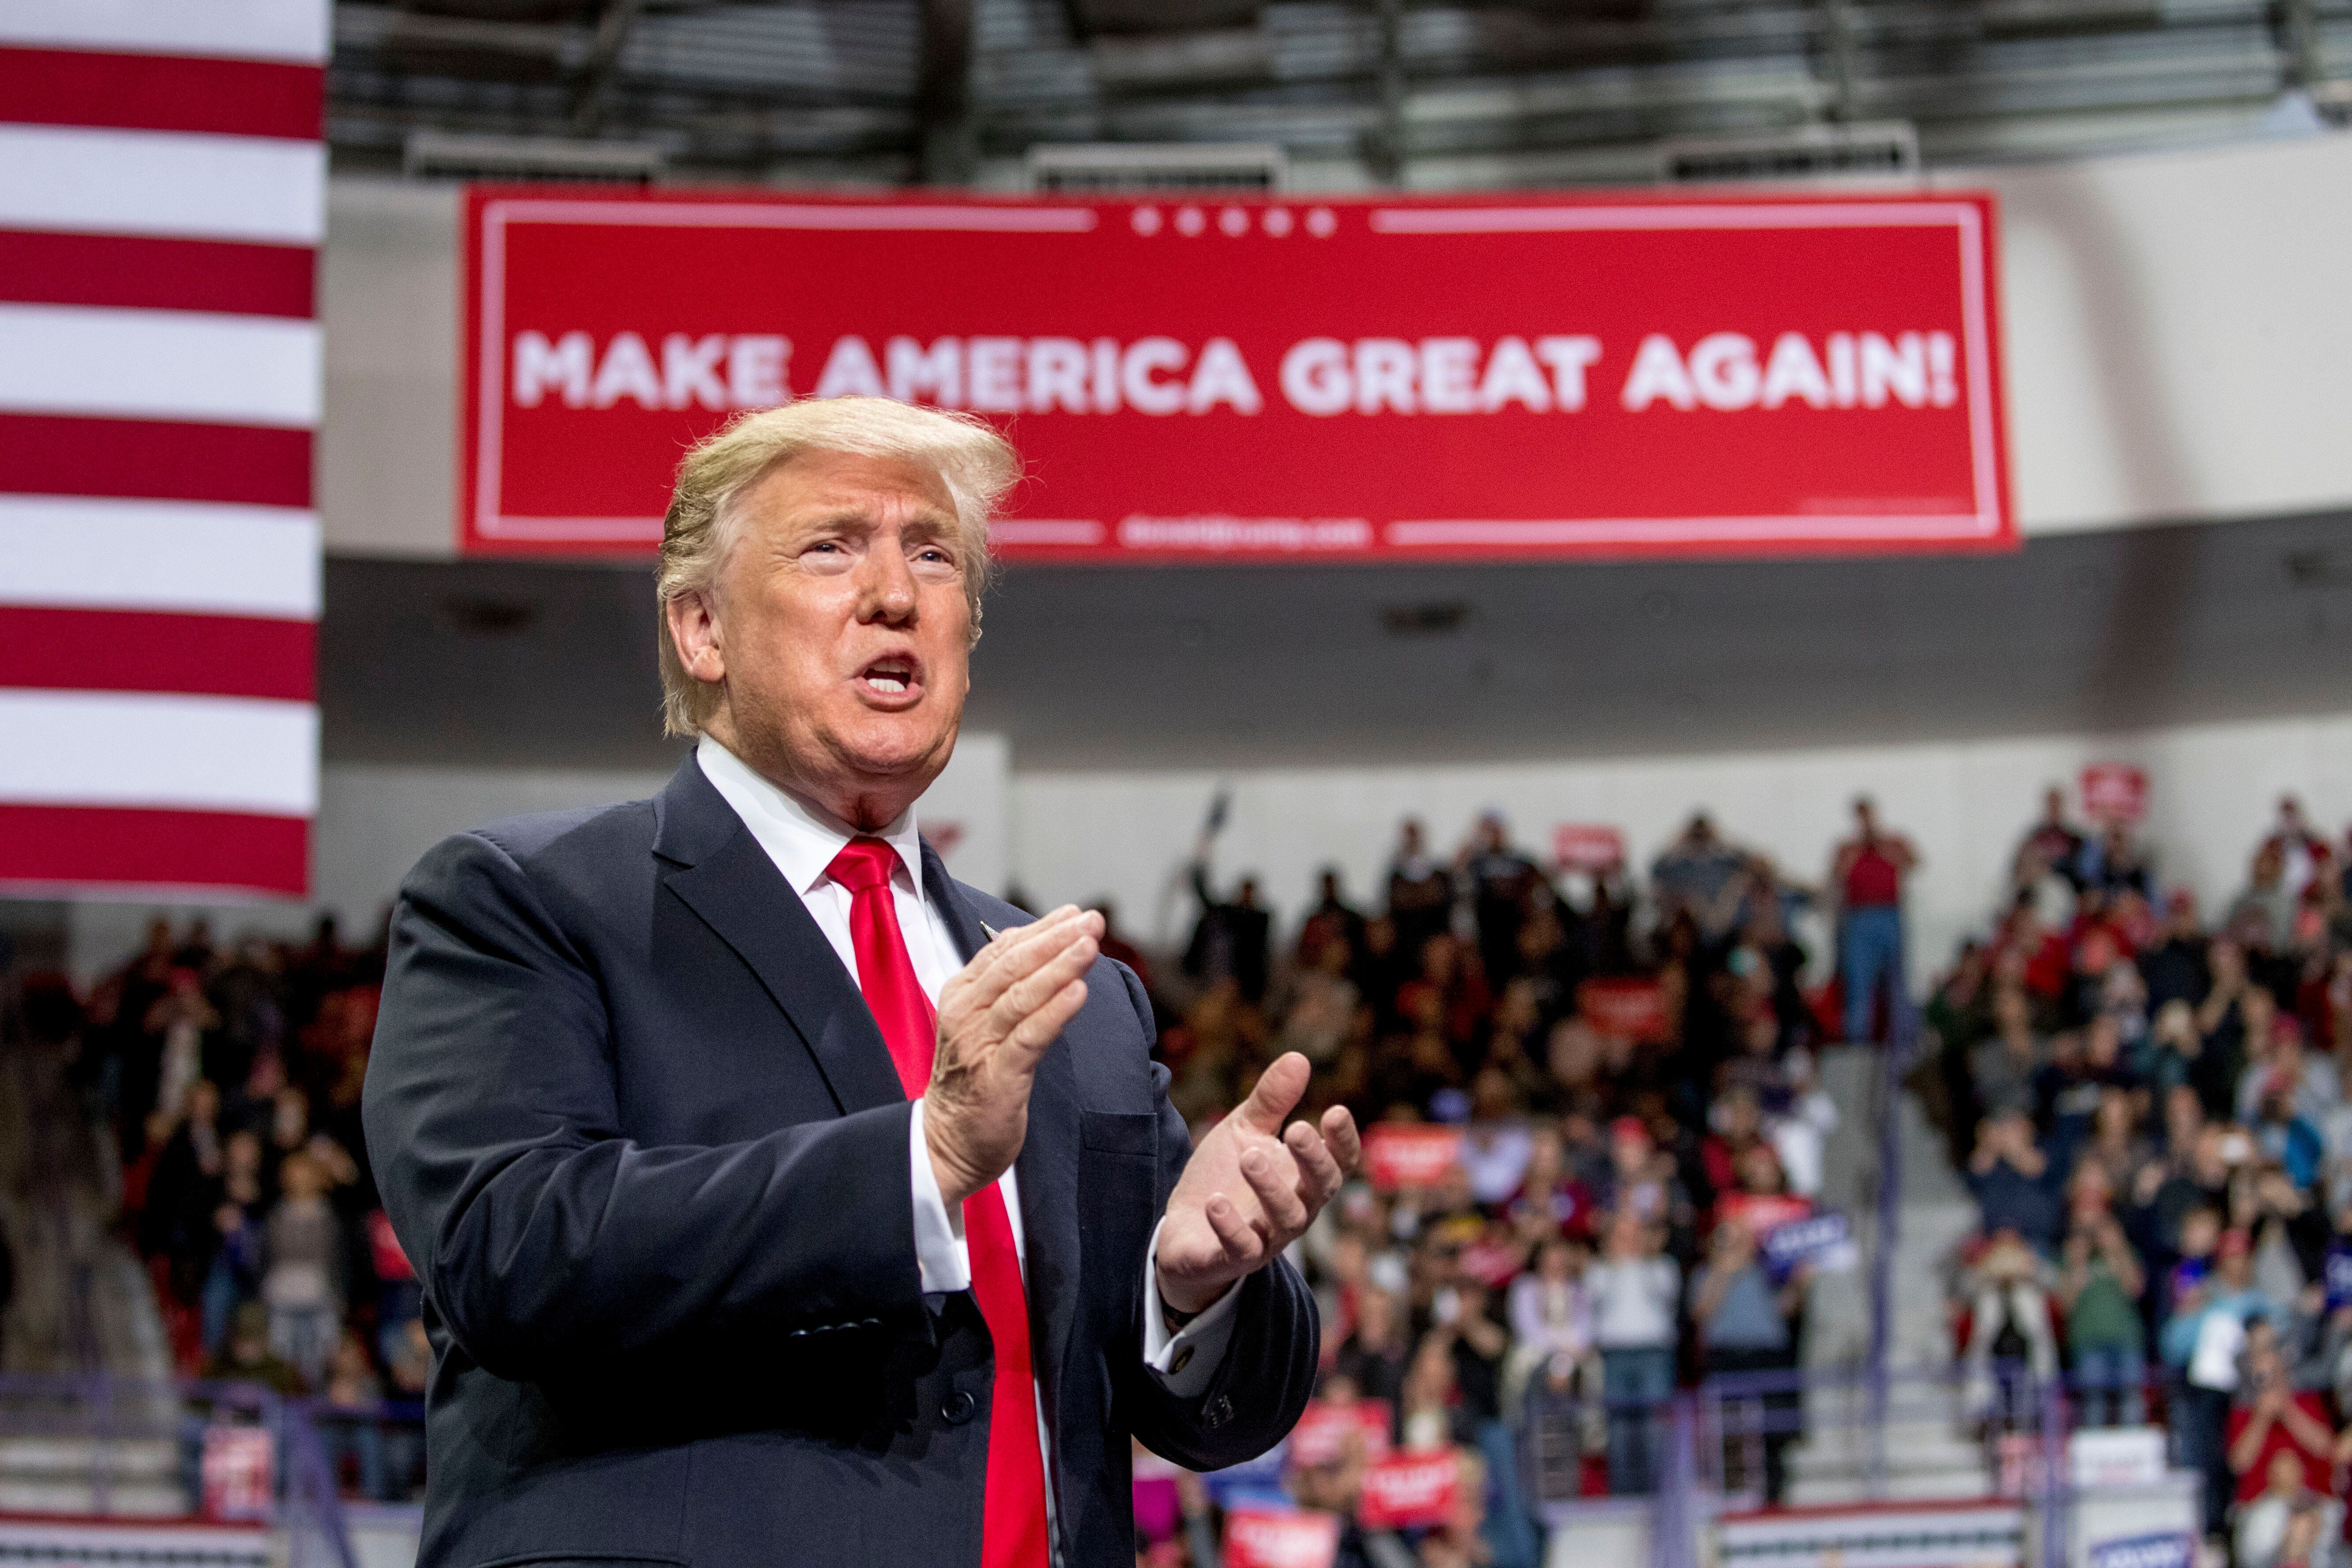 President Donald Trump arrives at a rally at Resch Center Complex in Green Bay, Wis., Saturday, April 27, 2019. (AP Photo/Andrew Harnik)